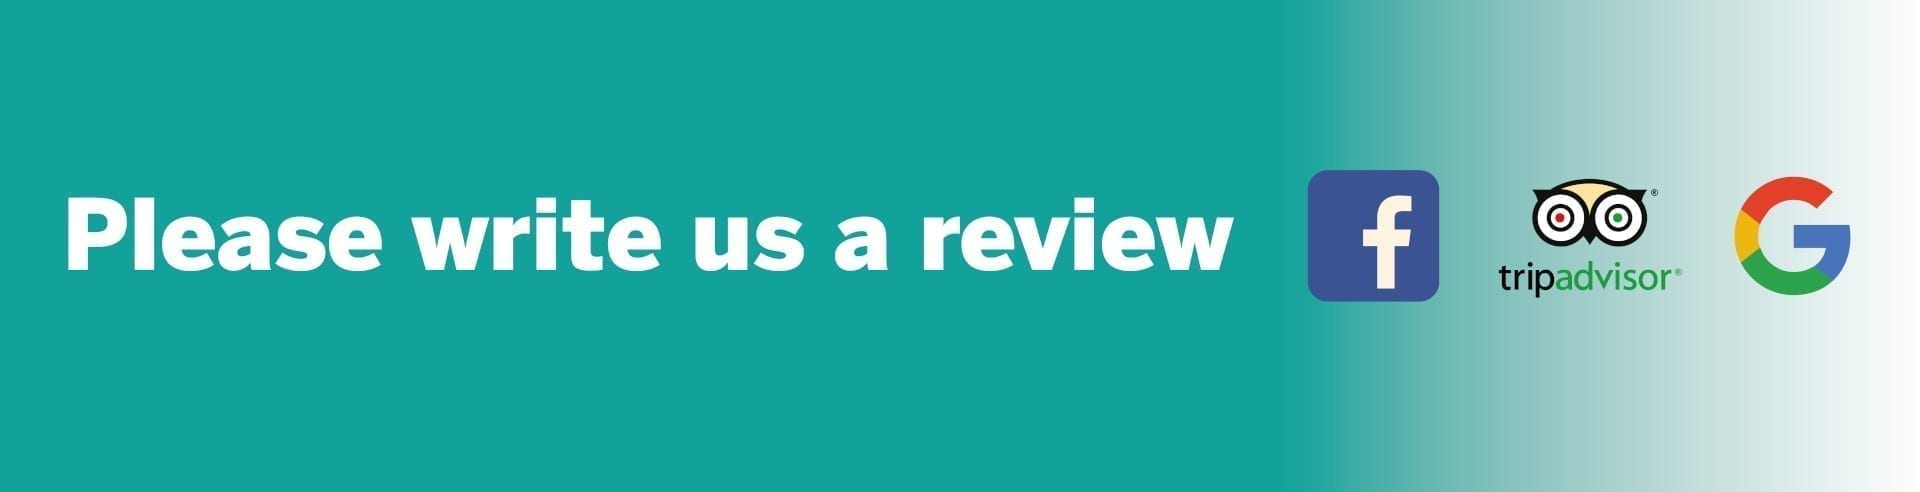 Write us a Review Graphic